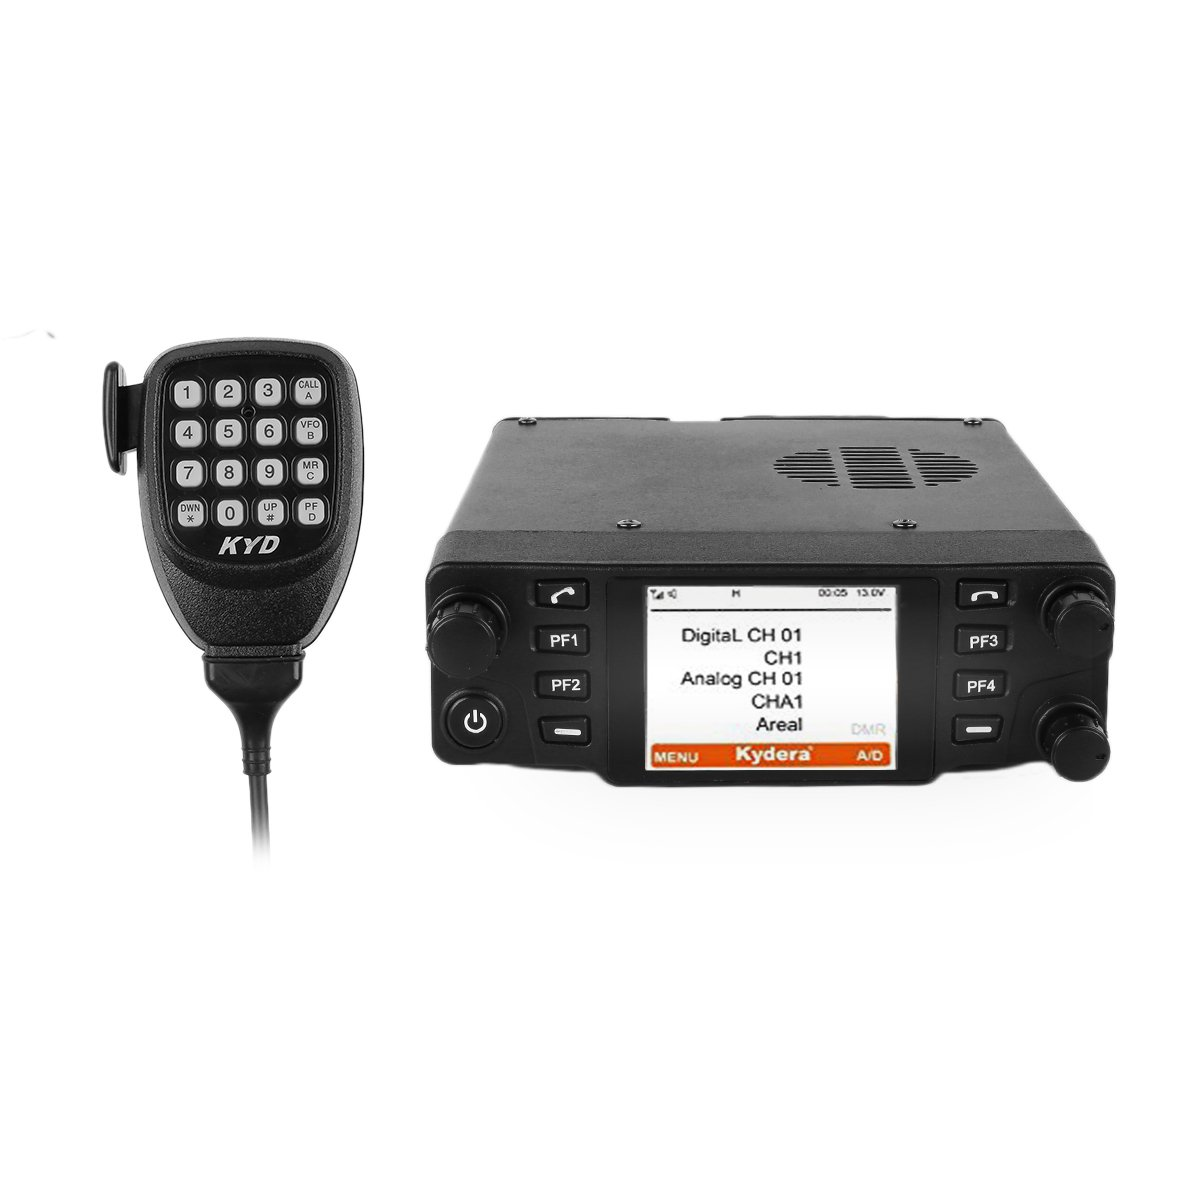 Kydera CDM-550H DMR 400-430 440-480Mhz UHF Large LCF Display 40W 25KM Digital Car Radio Ham Transceiver, with Programming Cable & Software by KYDERA (Image #2)